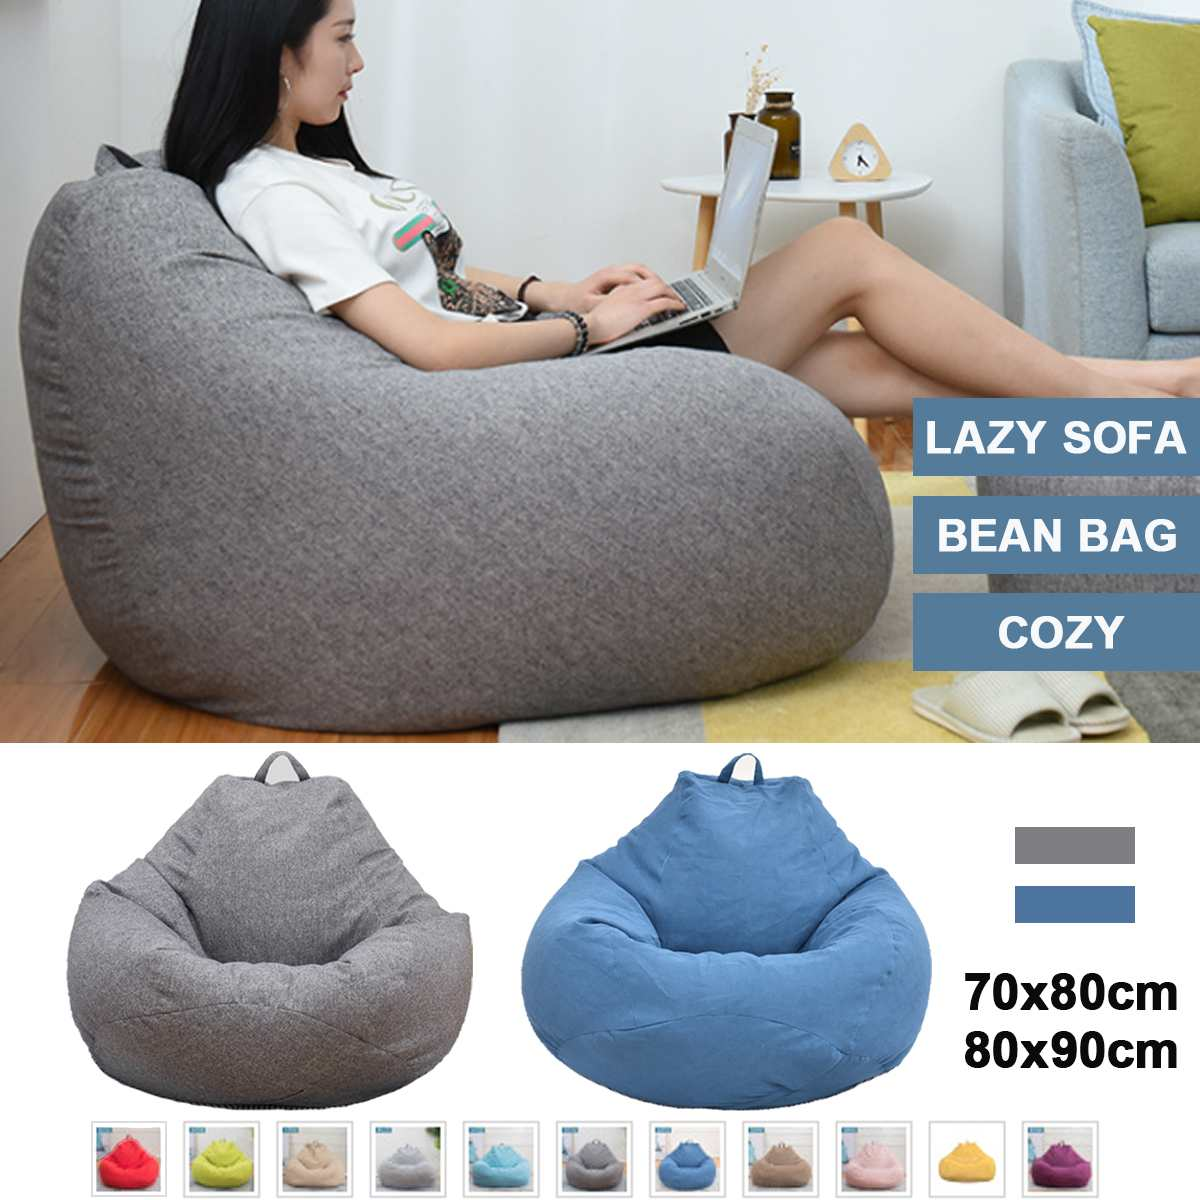 Furniture Stuffed Animal Ottoman Seat Bean Bag without Filling Beanbag Sofas Lounger Chair Sofa Cotton Chair Cover Only CoverFurniture Stuffed Animal Ottoman Seat Bean Bag without Filling Beanbag Sofas Lounger Chair Sofa Cotton Chair Cover Only Cover